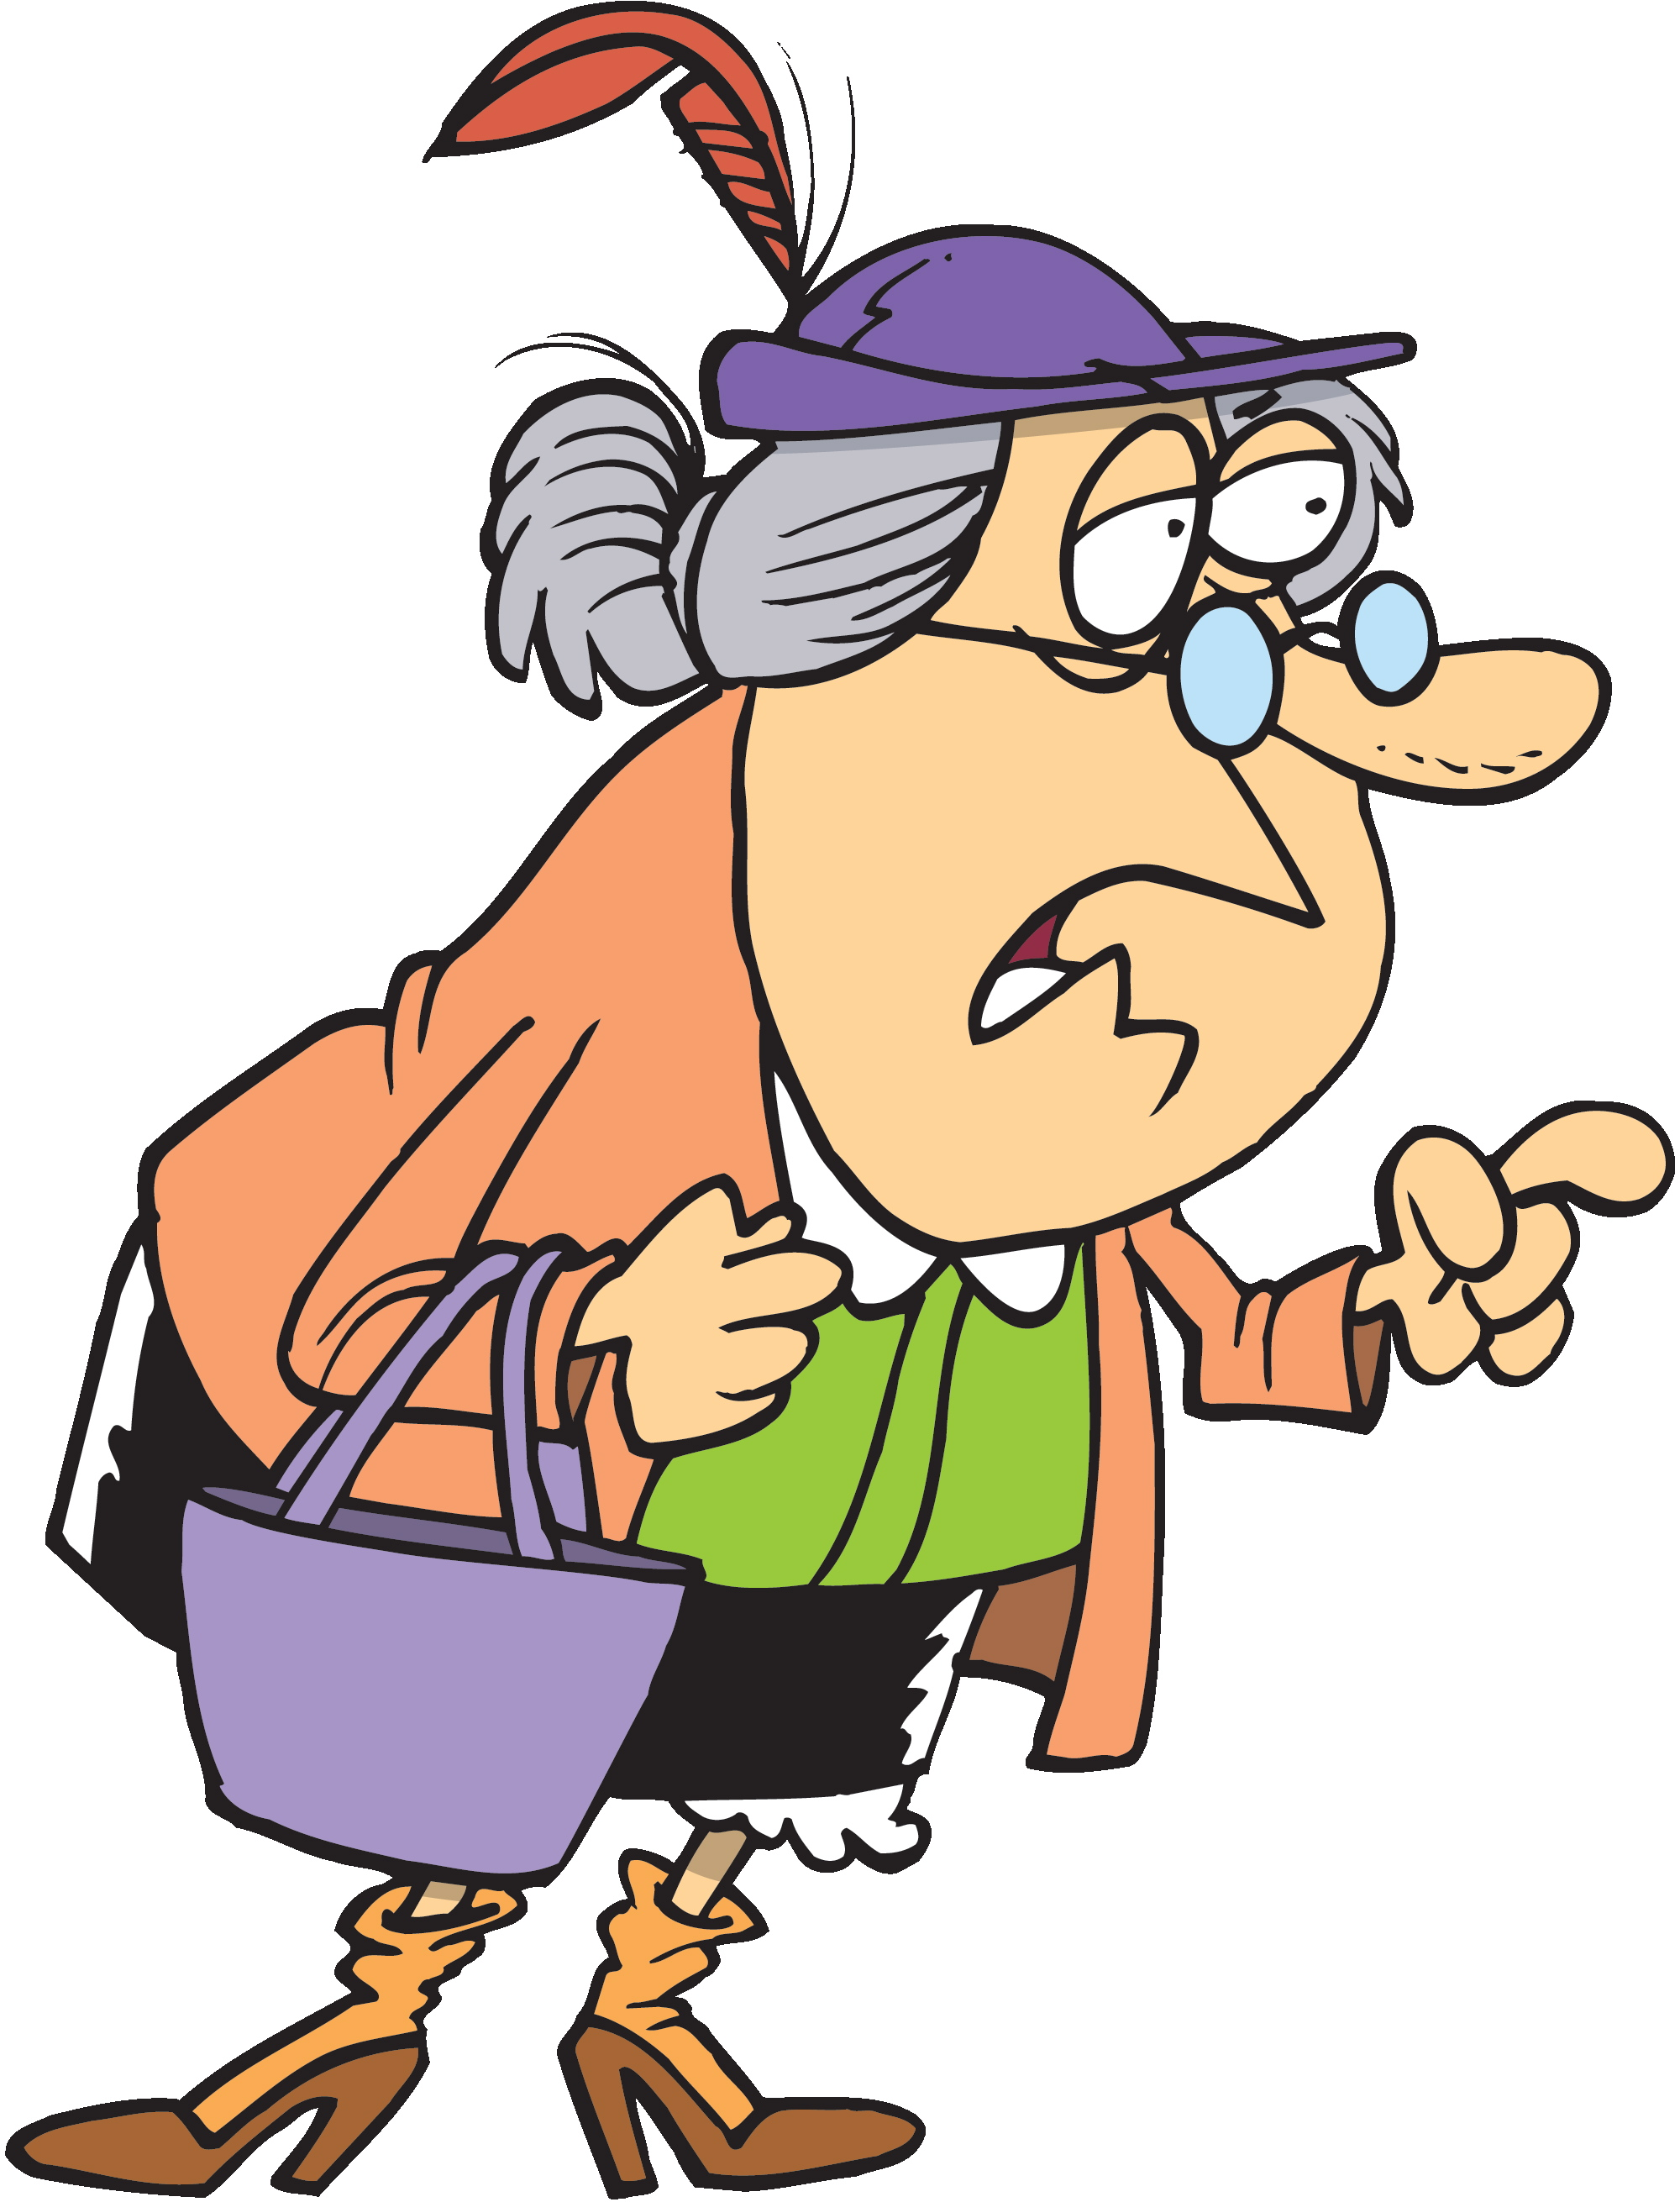 961 Old Woman free clipart.